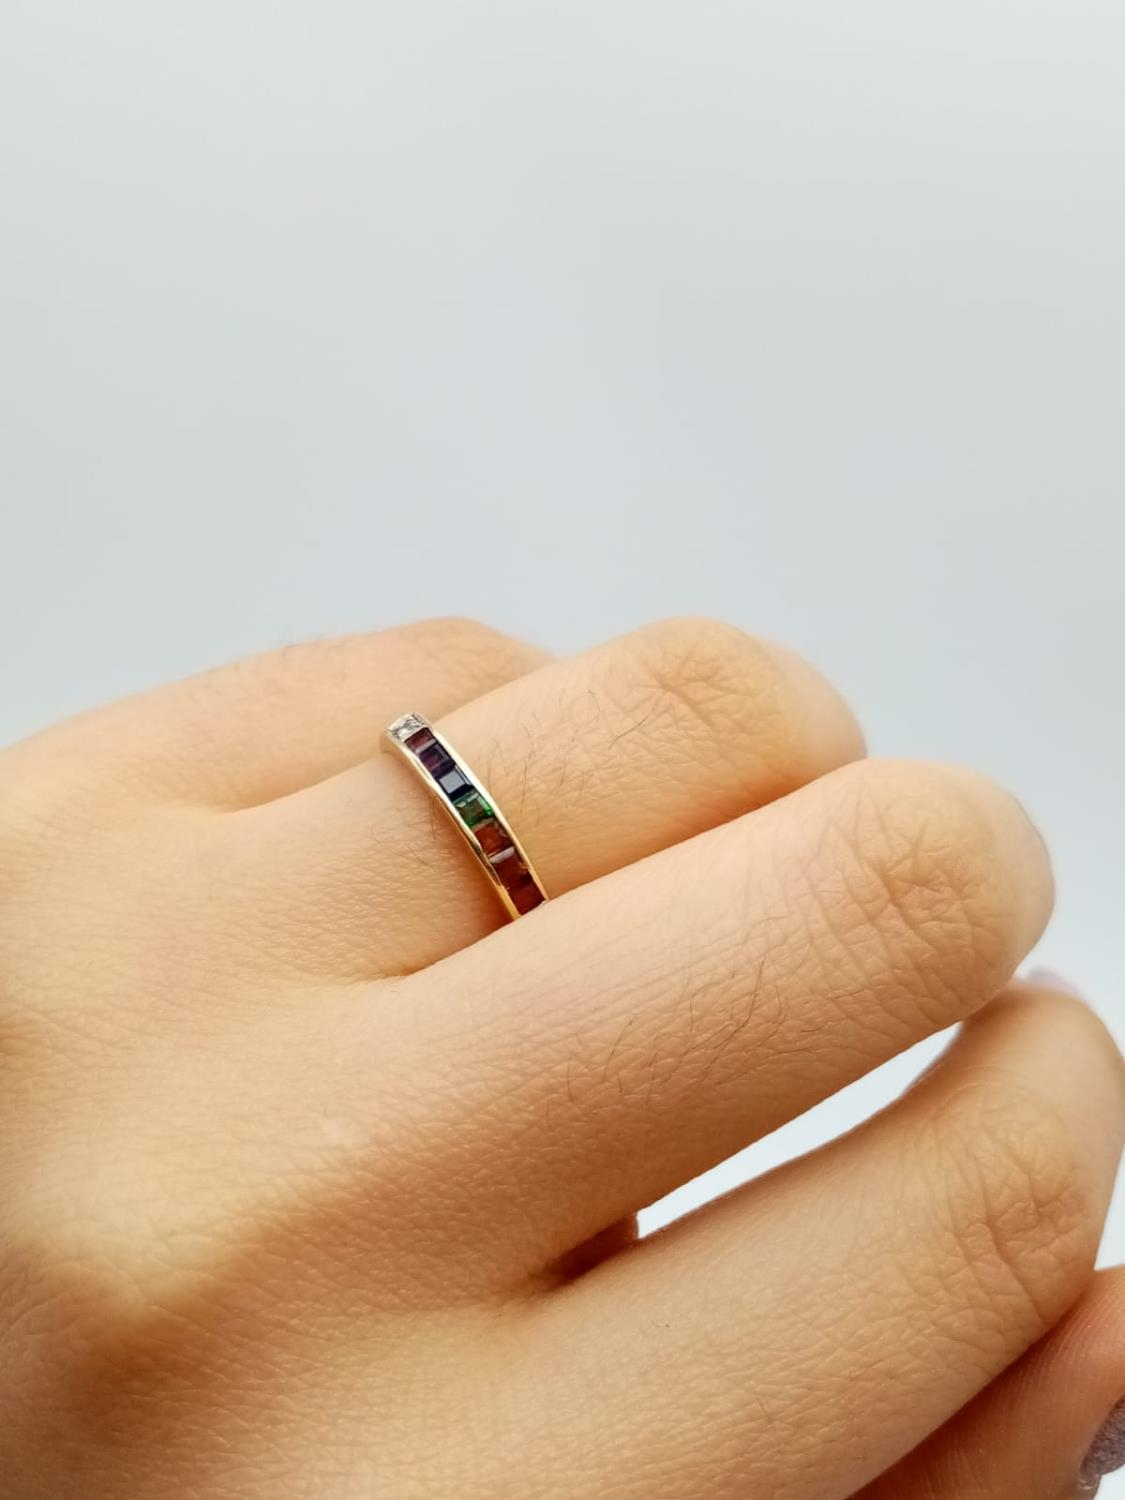 14k yellow gold vintage half eternity ring with multi colour gemstones, weight 1.7g and size K - Image 5 of 7